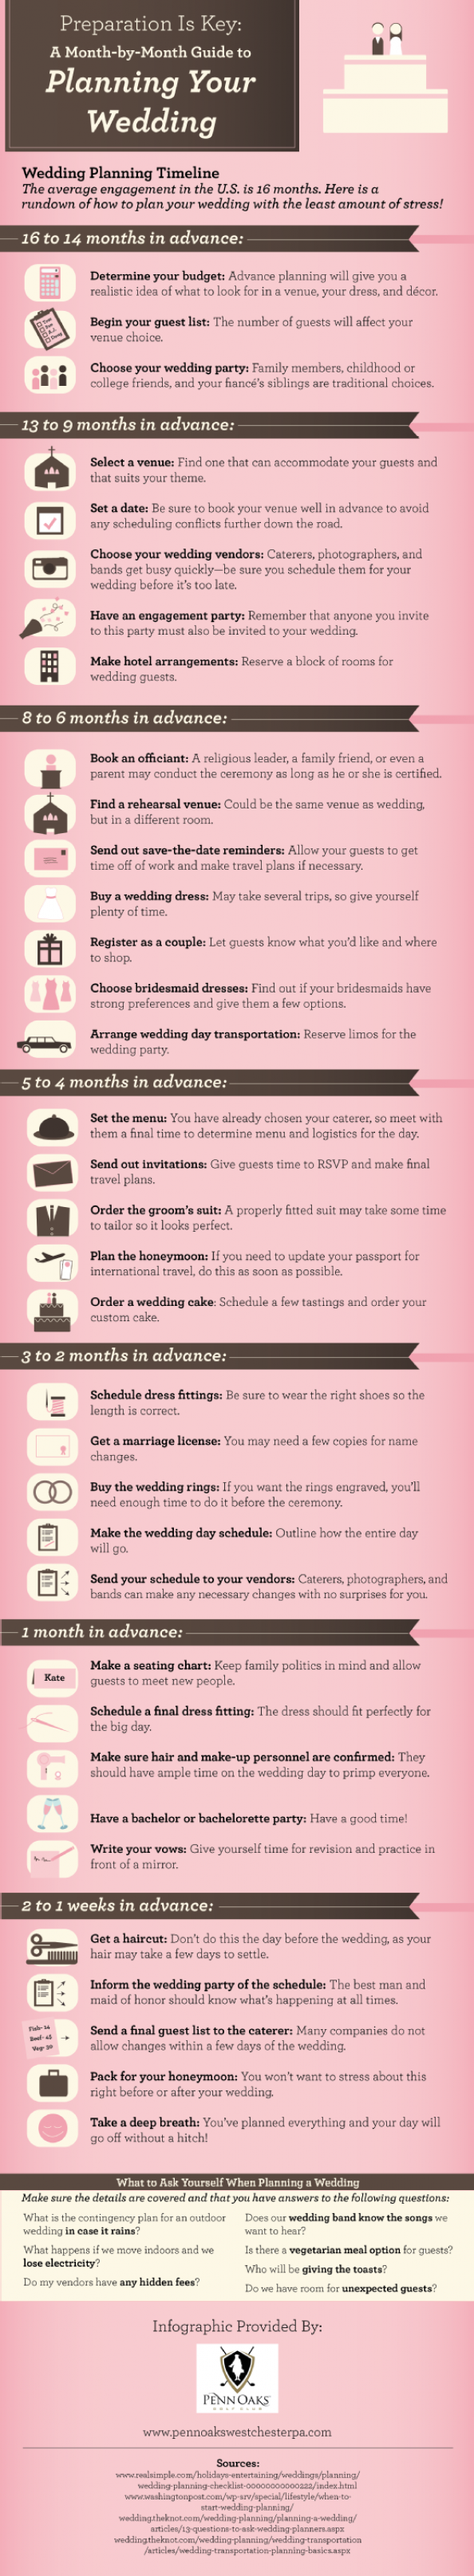 Preparation Is Key A Month By Month Guide To Planning Your Wedding